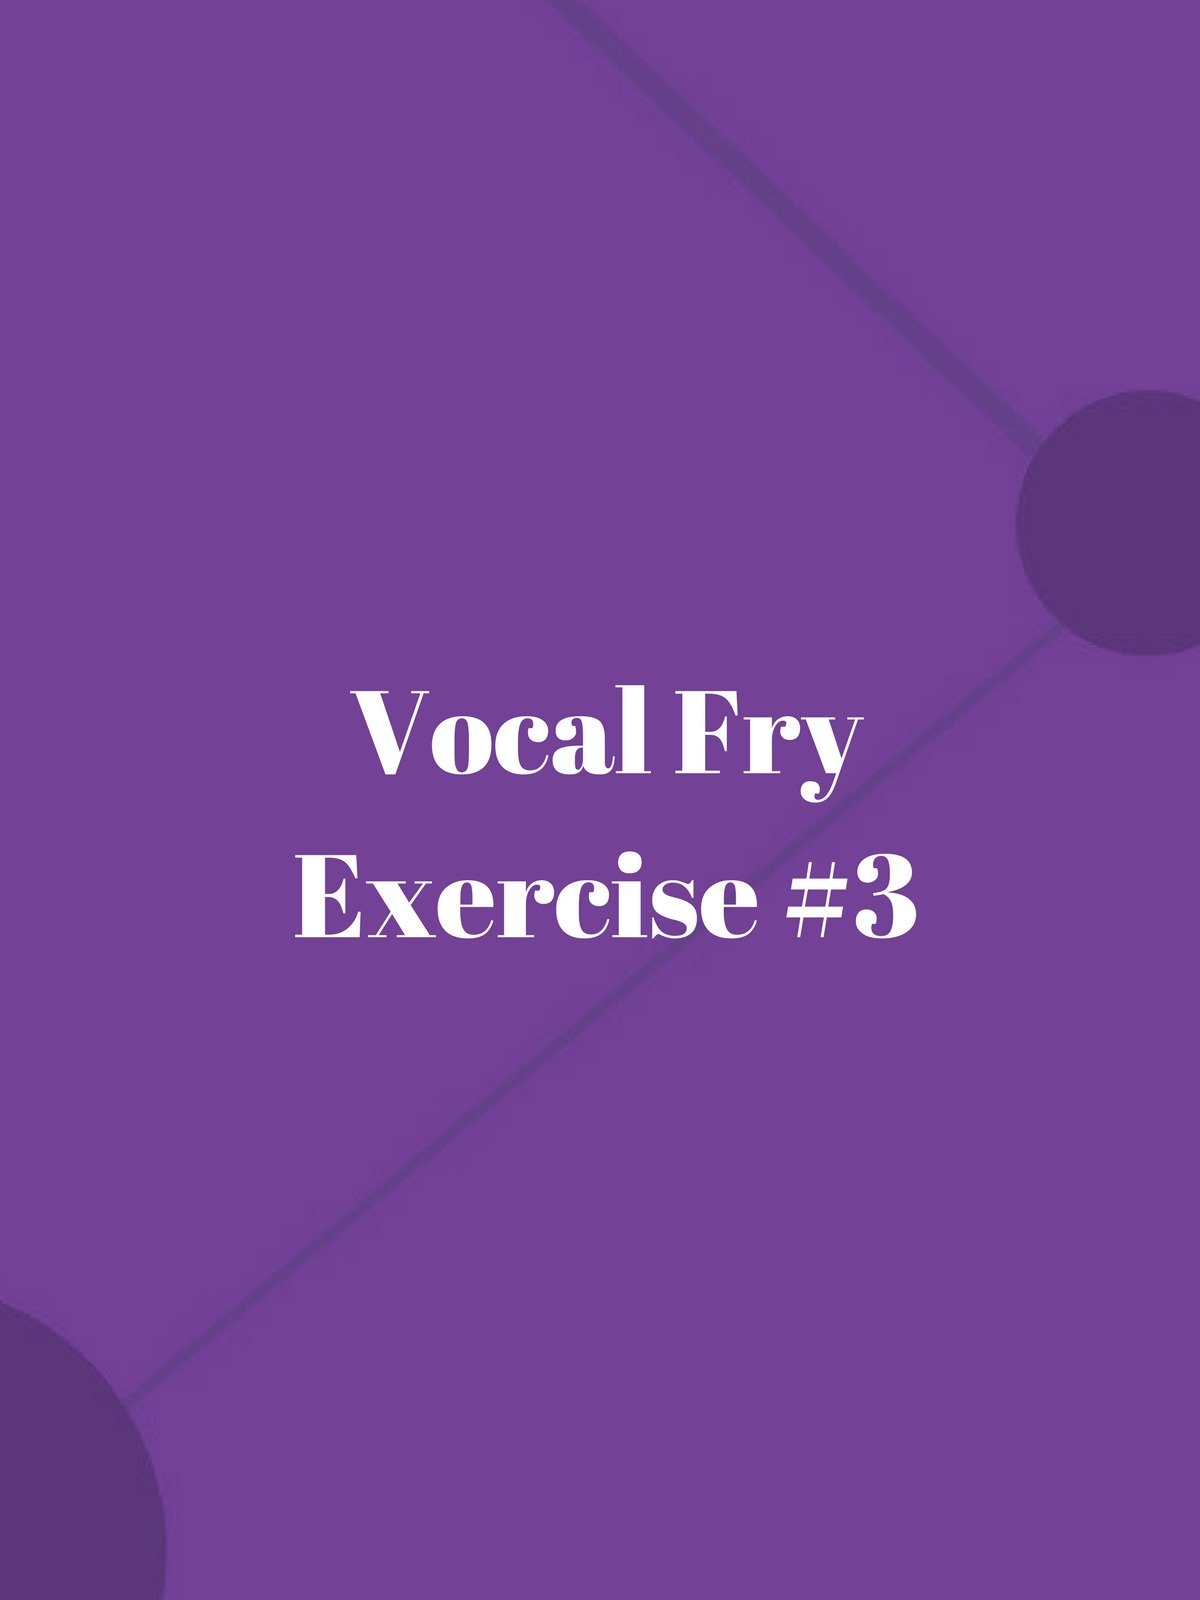 Vocal Fry Exercise #3